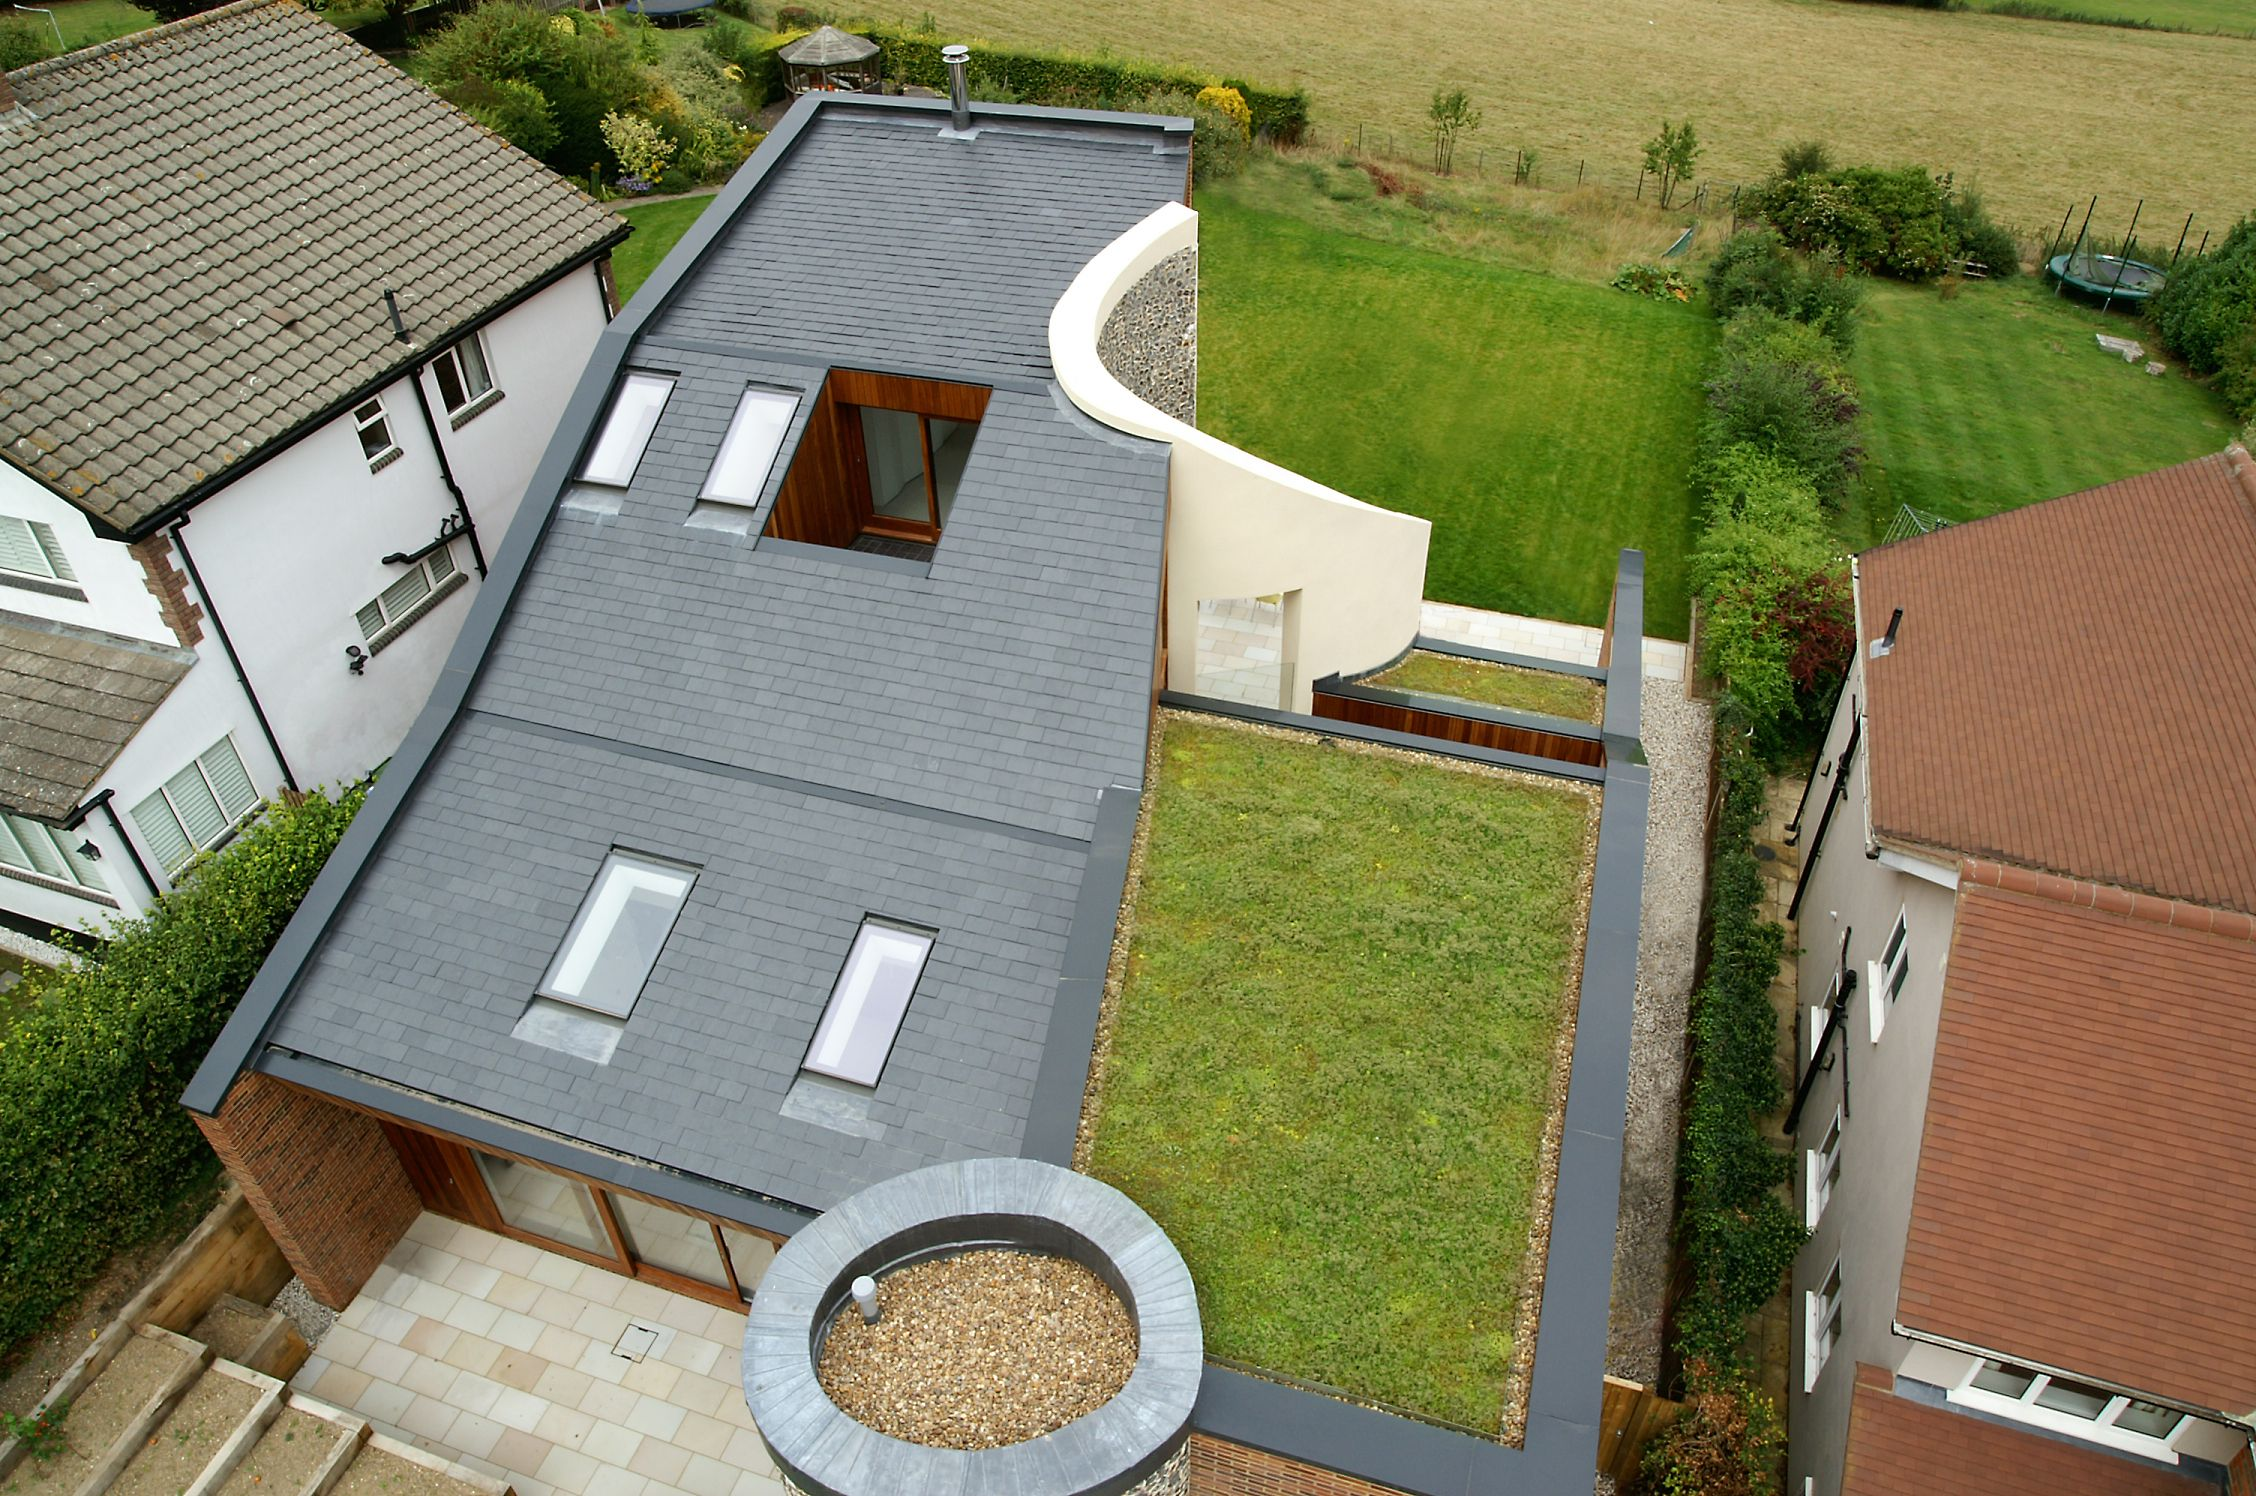 Single ply green roof installations roof assured by sika for Sustainable roofing materials